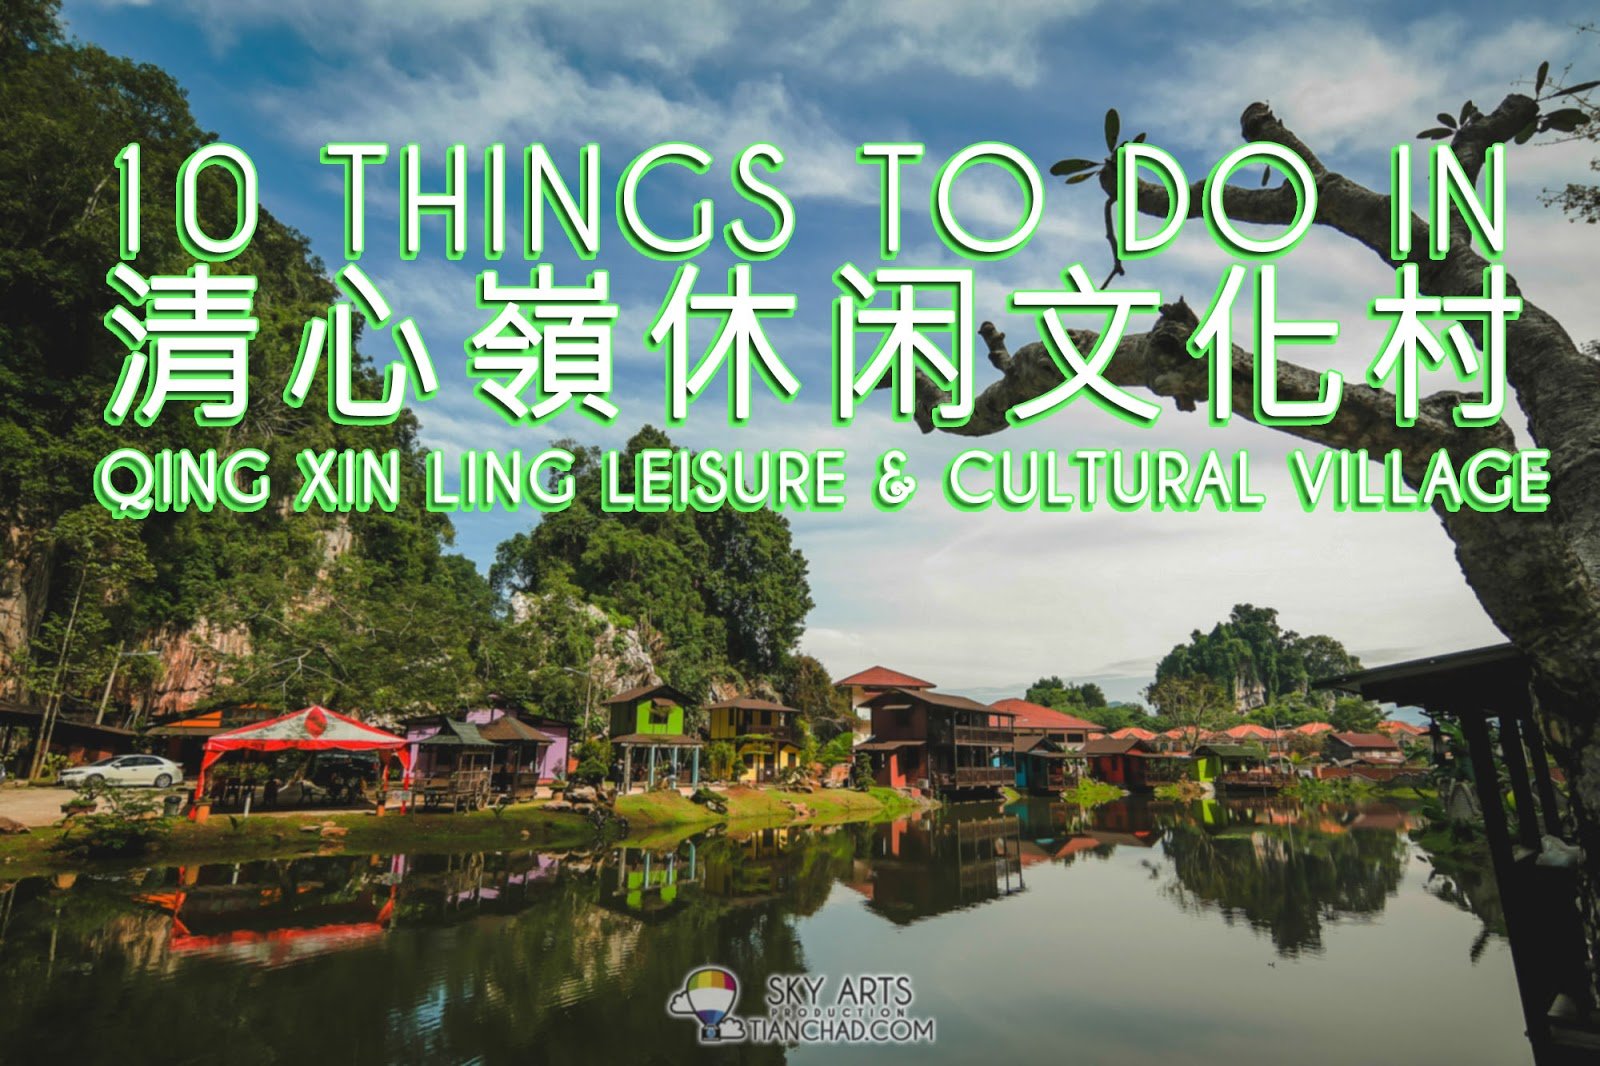 10 Things To Do @ 清心嶺休闲文化村 Qing Xin Ling Leisure & Cultural Village